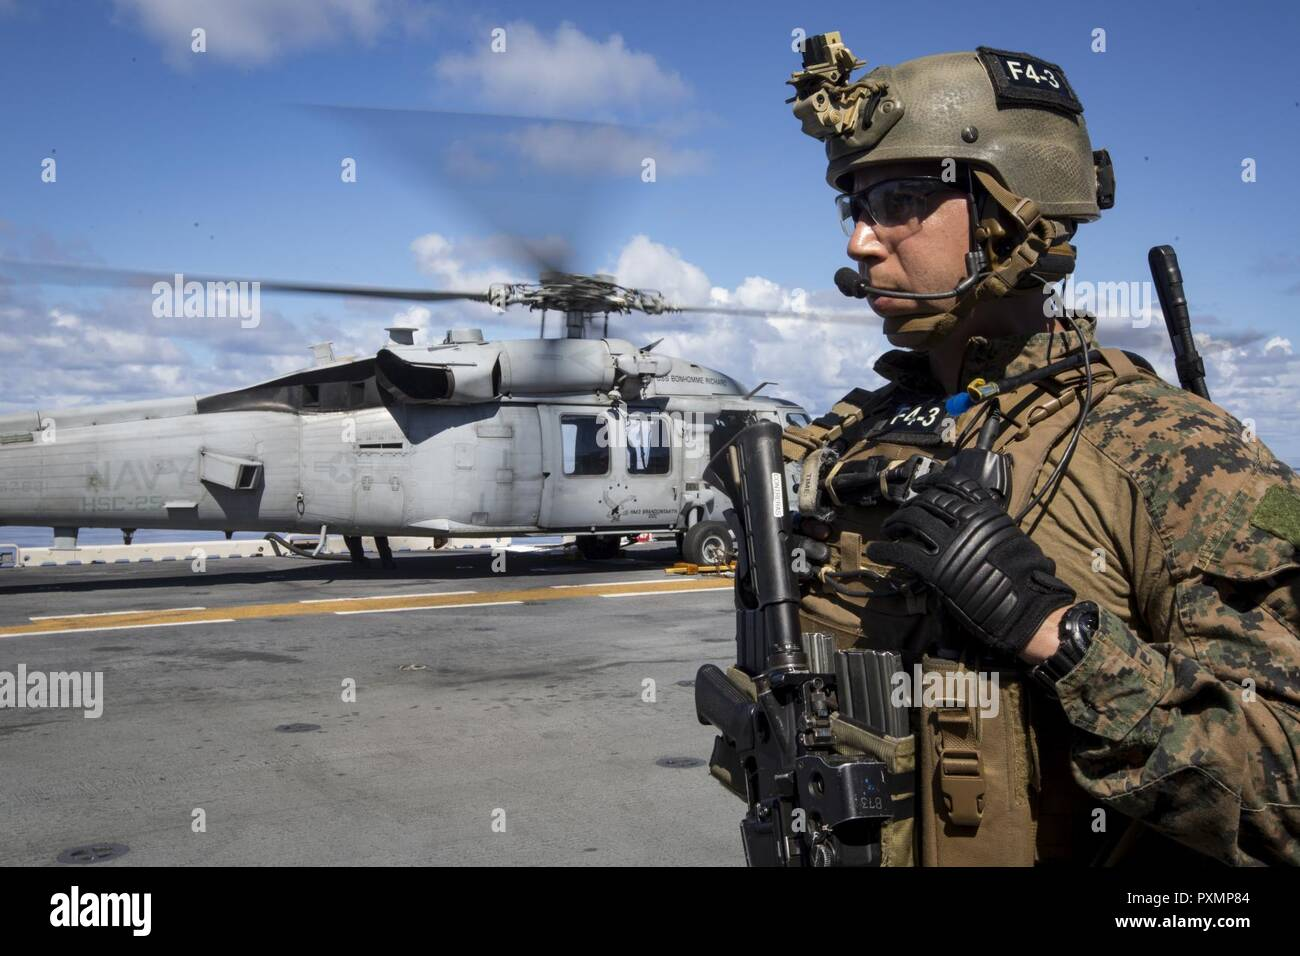 Staff Sgt. Abel Contreras, communications chief with the 31st Marine Expeditionary Unit's Force Reconnaissance Platoon (FRP), waits to board an MH-60S Sea Hawk helicopter aboard the USS Bonhomme Richard (LHD 6) before launching for vessel Visit, Board, Search and Seizure (VBSS) training, June 15, 2017.  During VBSS, Marines with FRP board vessels via rotary-wing aircraft or surface boats in response to a terrorist threat, to interdict pirates and smugglers or to disrupt criminal activity.  The 31st MEU partners with the Navy's Amphibious Squadron 11 to form the amphibious component of the Bonh Stock Photo